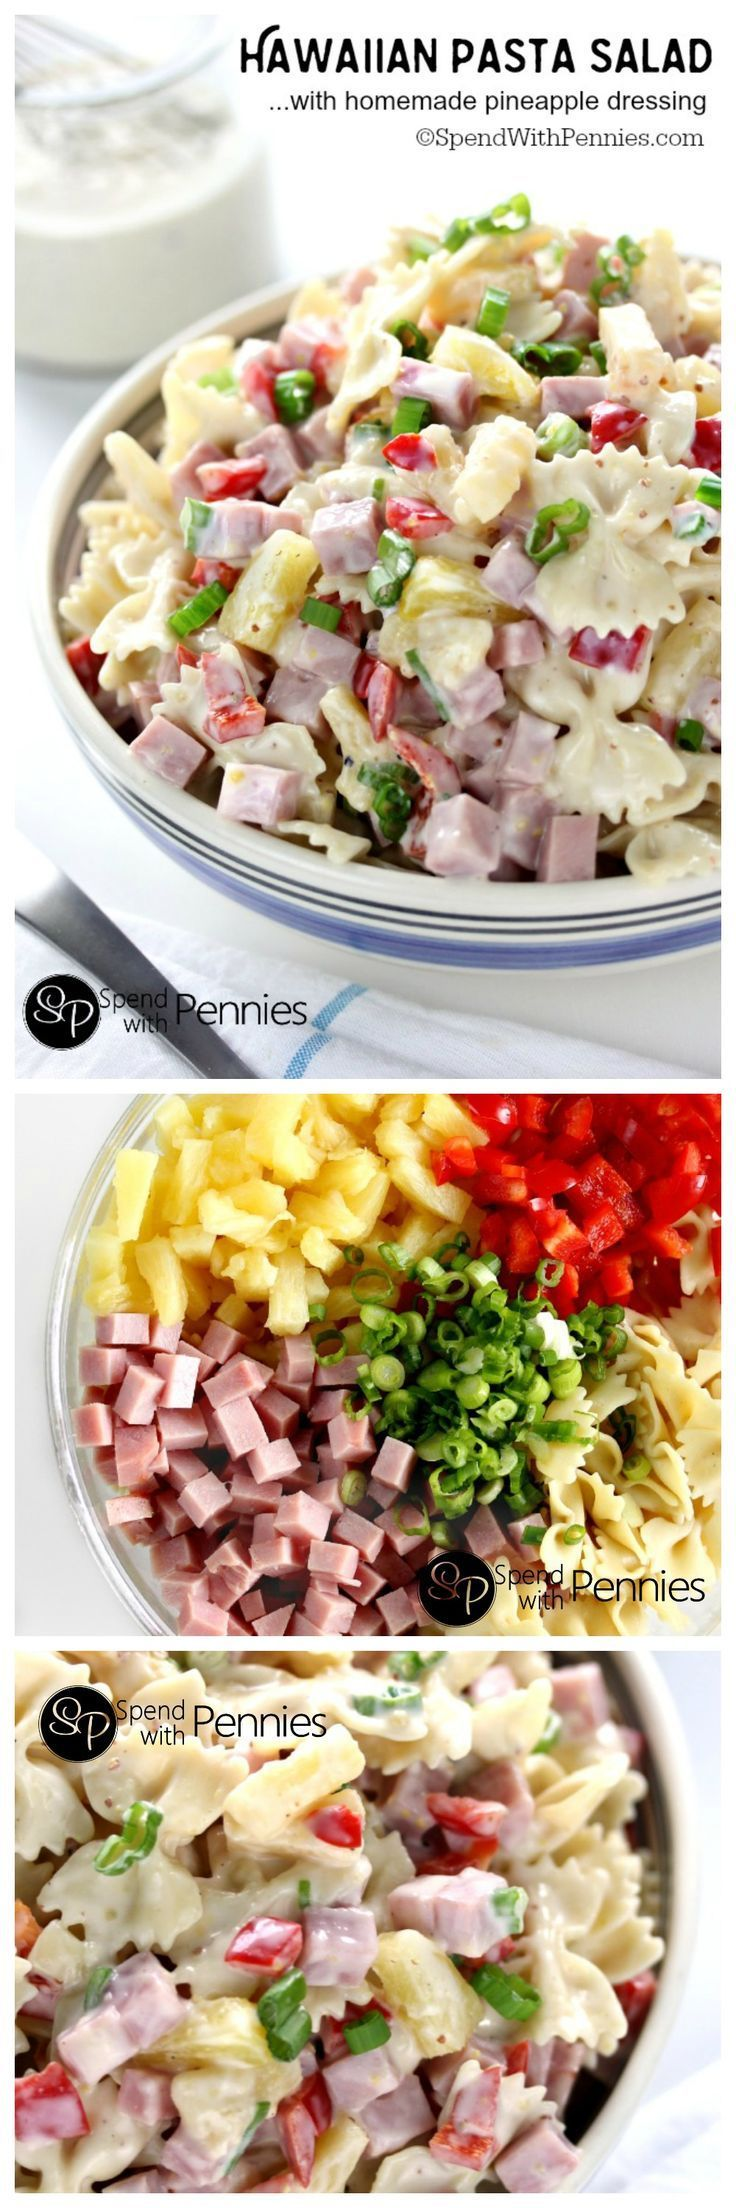 Hawaiian Pasta Salad is literally one of the most delicious cold pasta salad recipes! Pasta combined with ham and sweet pineapple and tossed with a delicious homemade dressing is the perfect combination!: